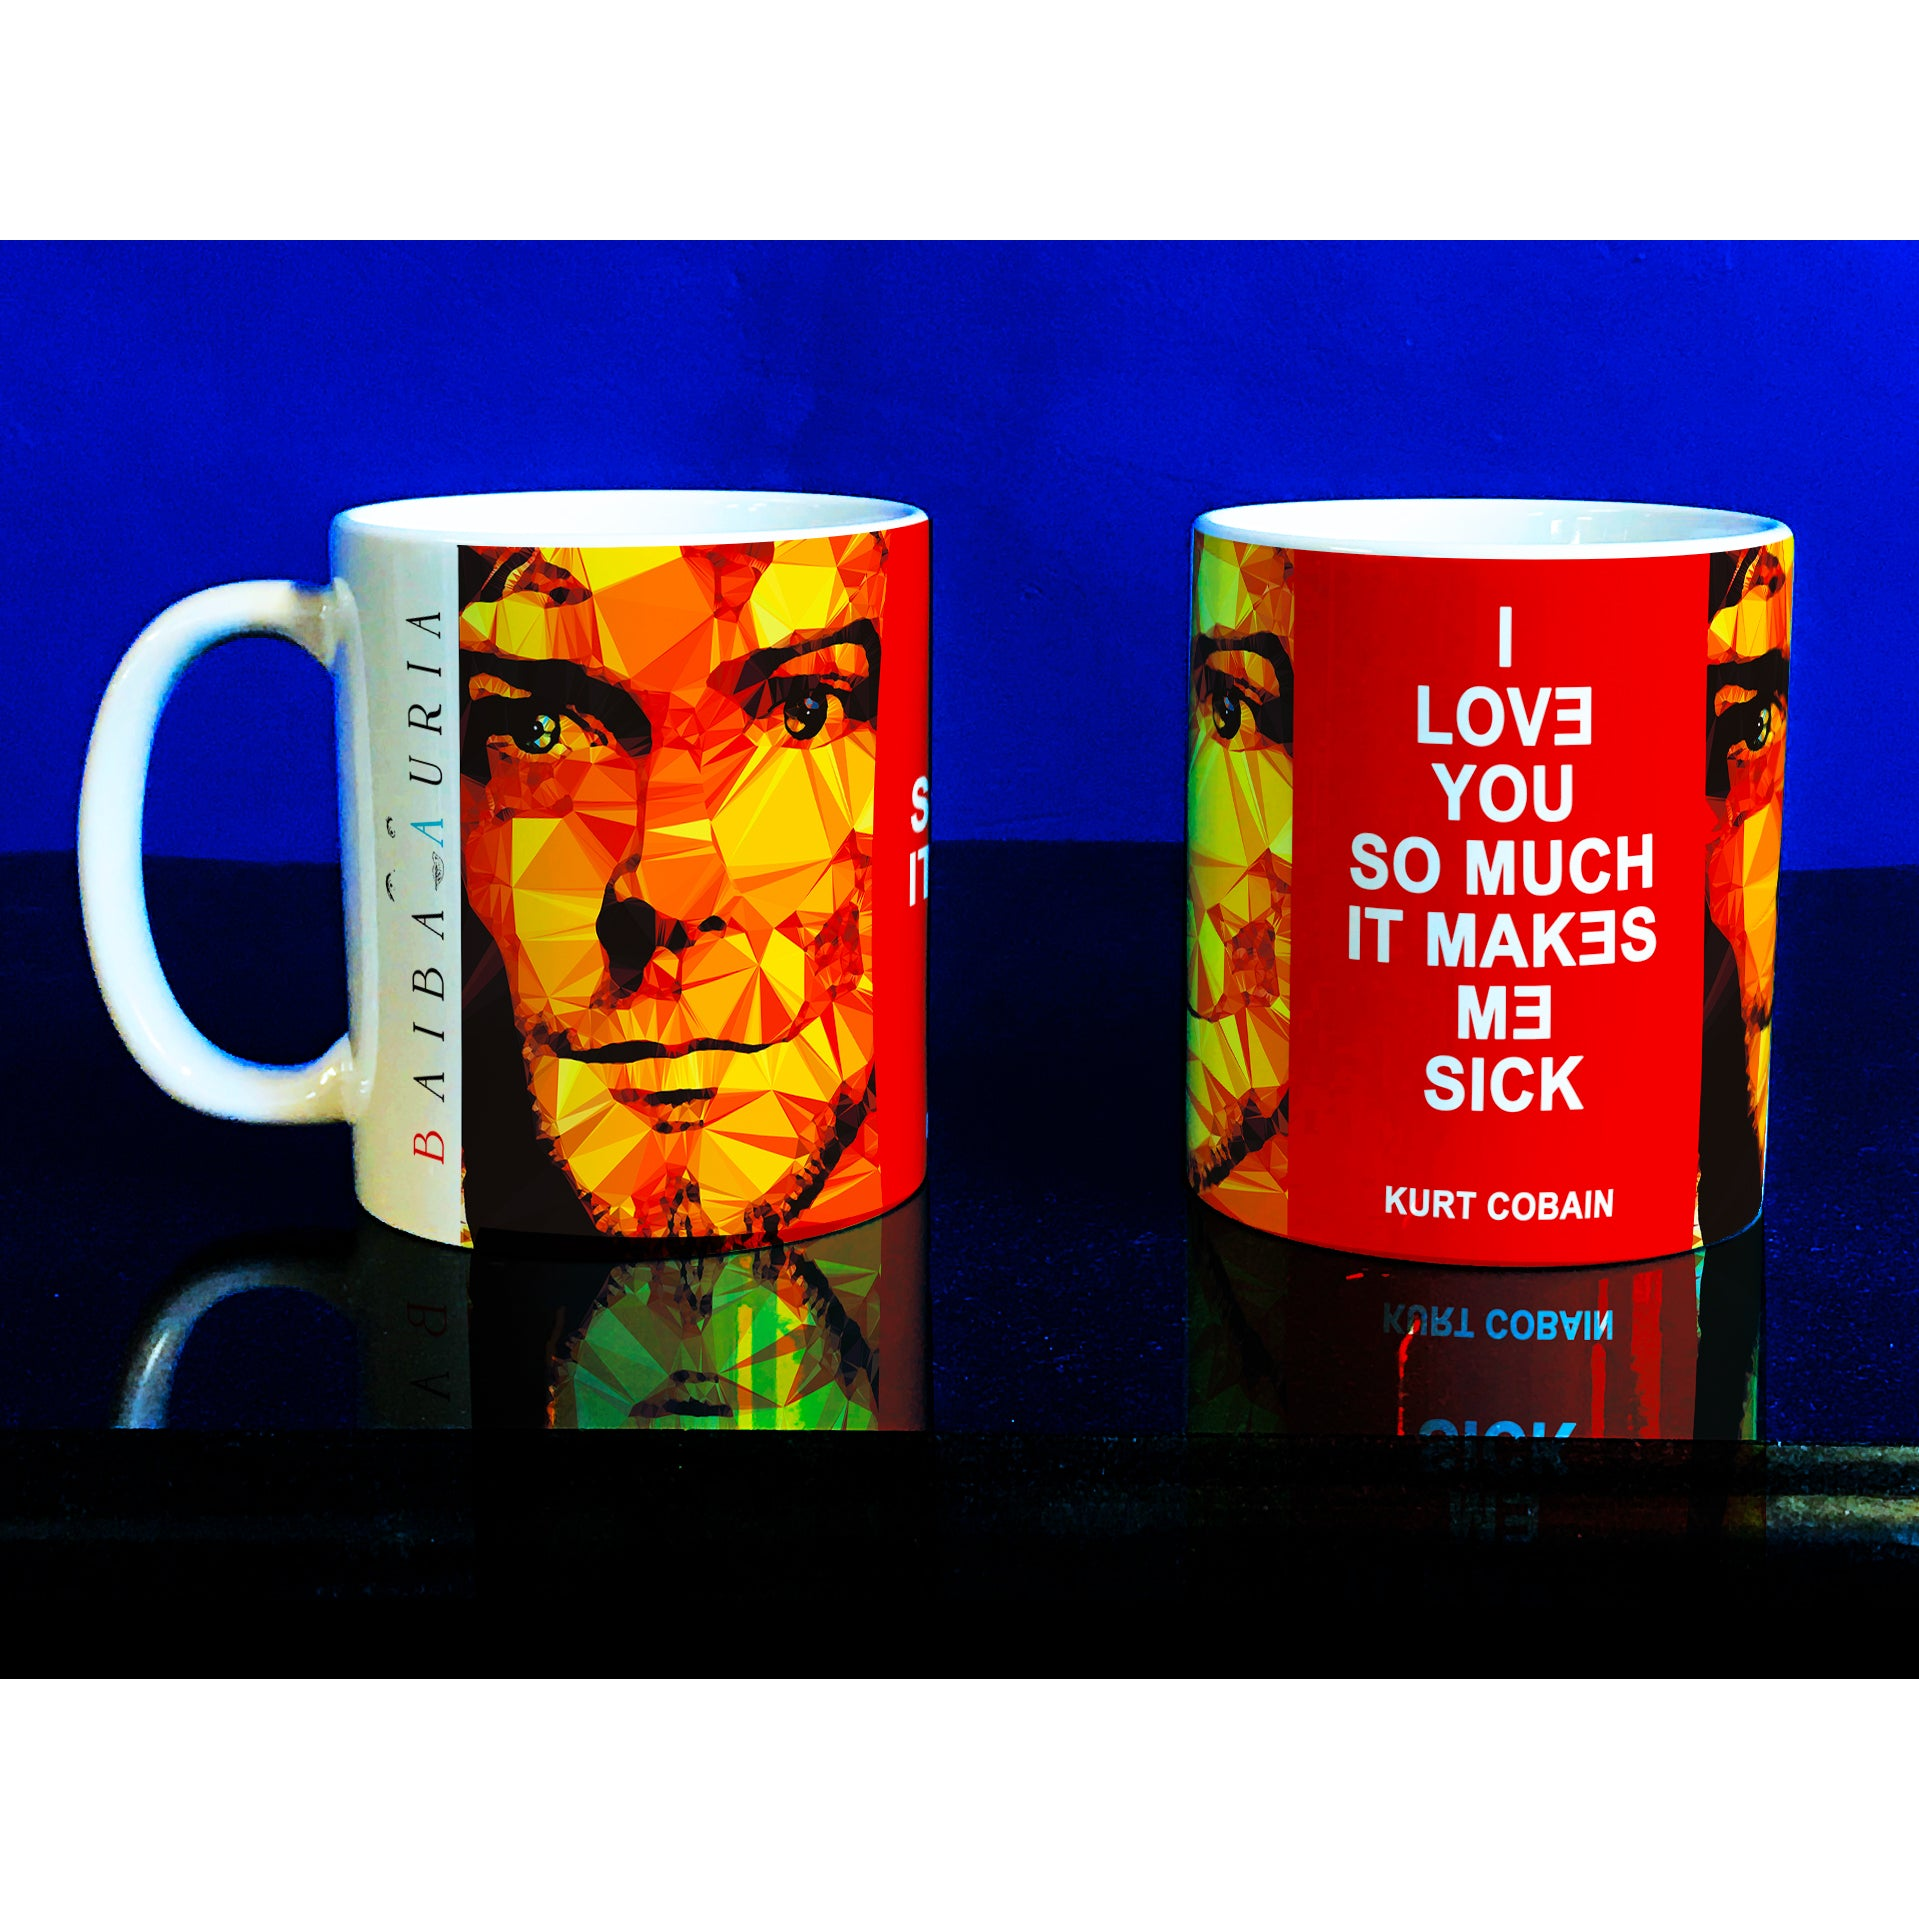 Kurt Cobain Mug by Baiba Auria - Egoiste Gallery - Art Gallery in Manchester City Centre